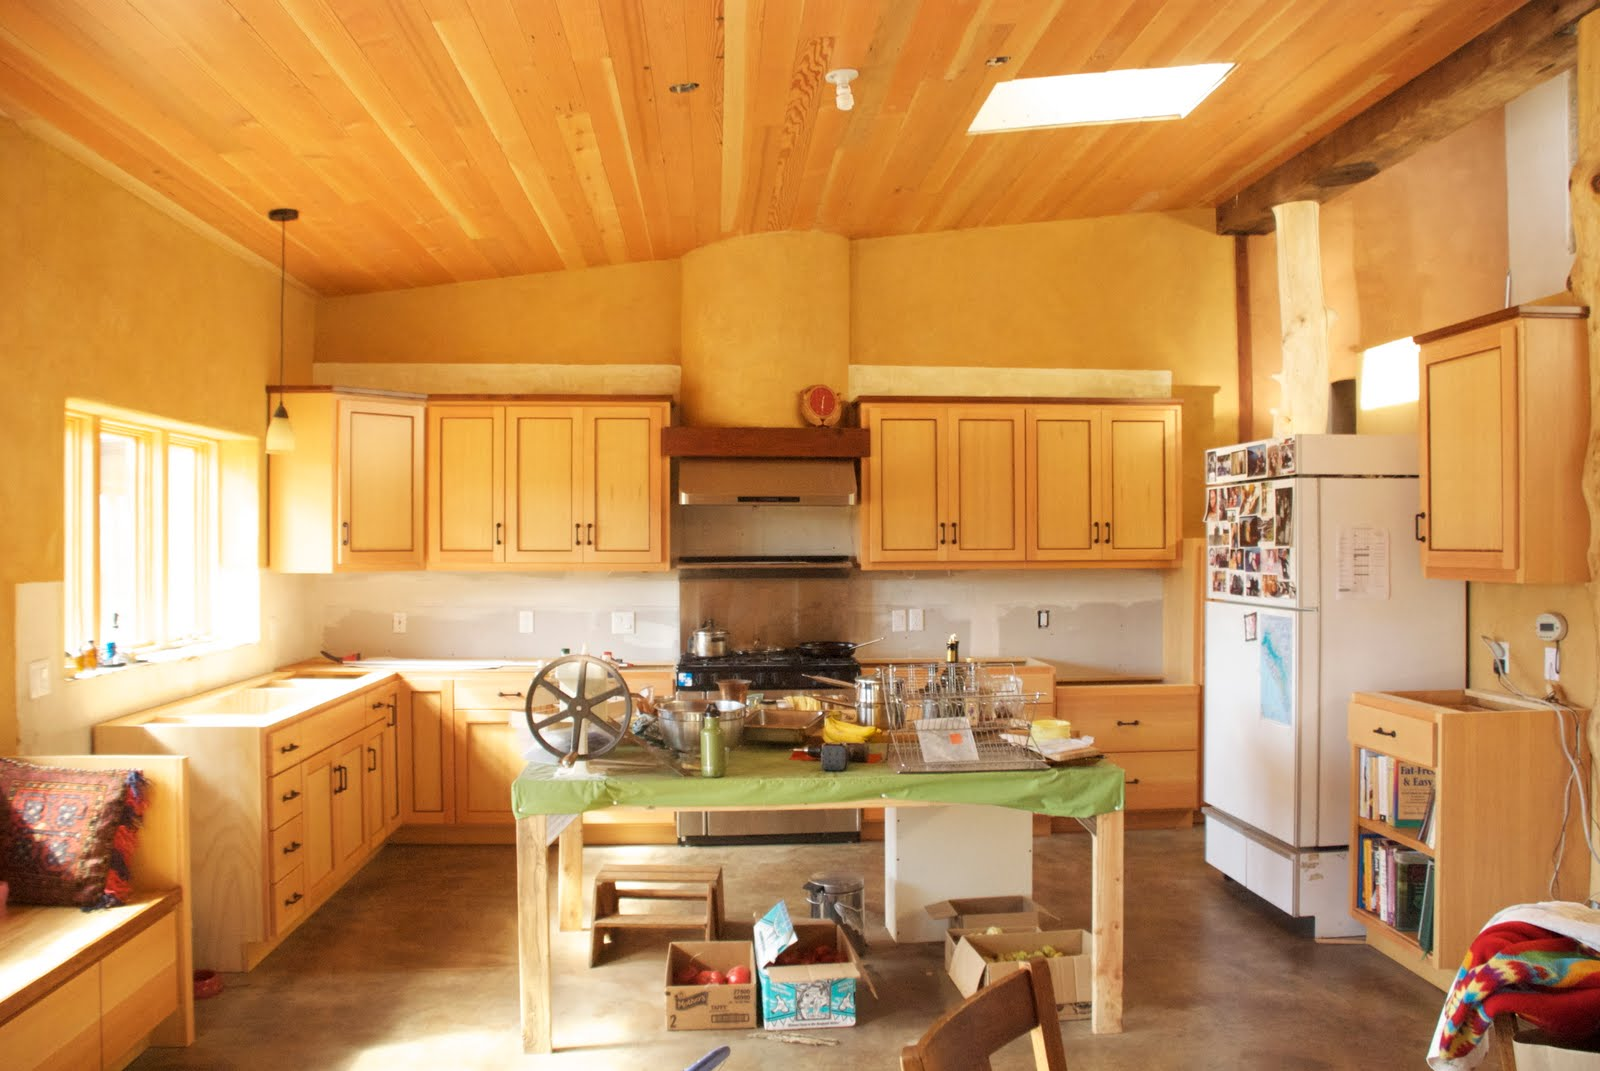 California Homesteading: Kitchen Cabinets, Oh My!